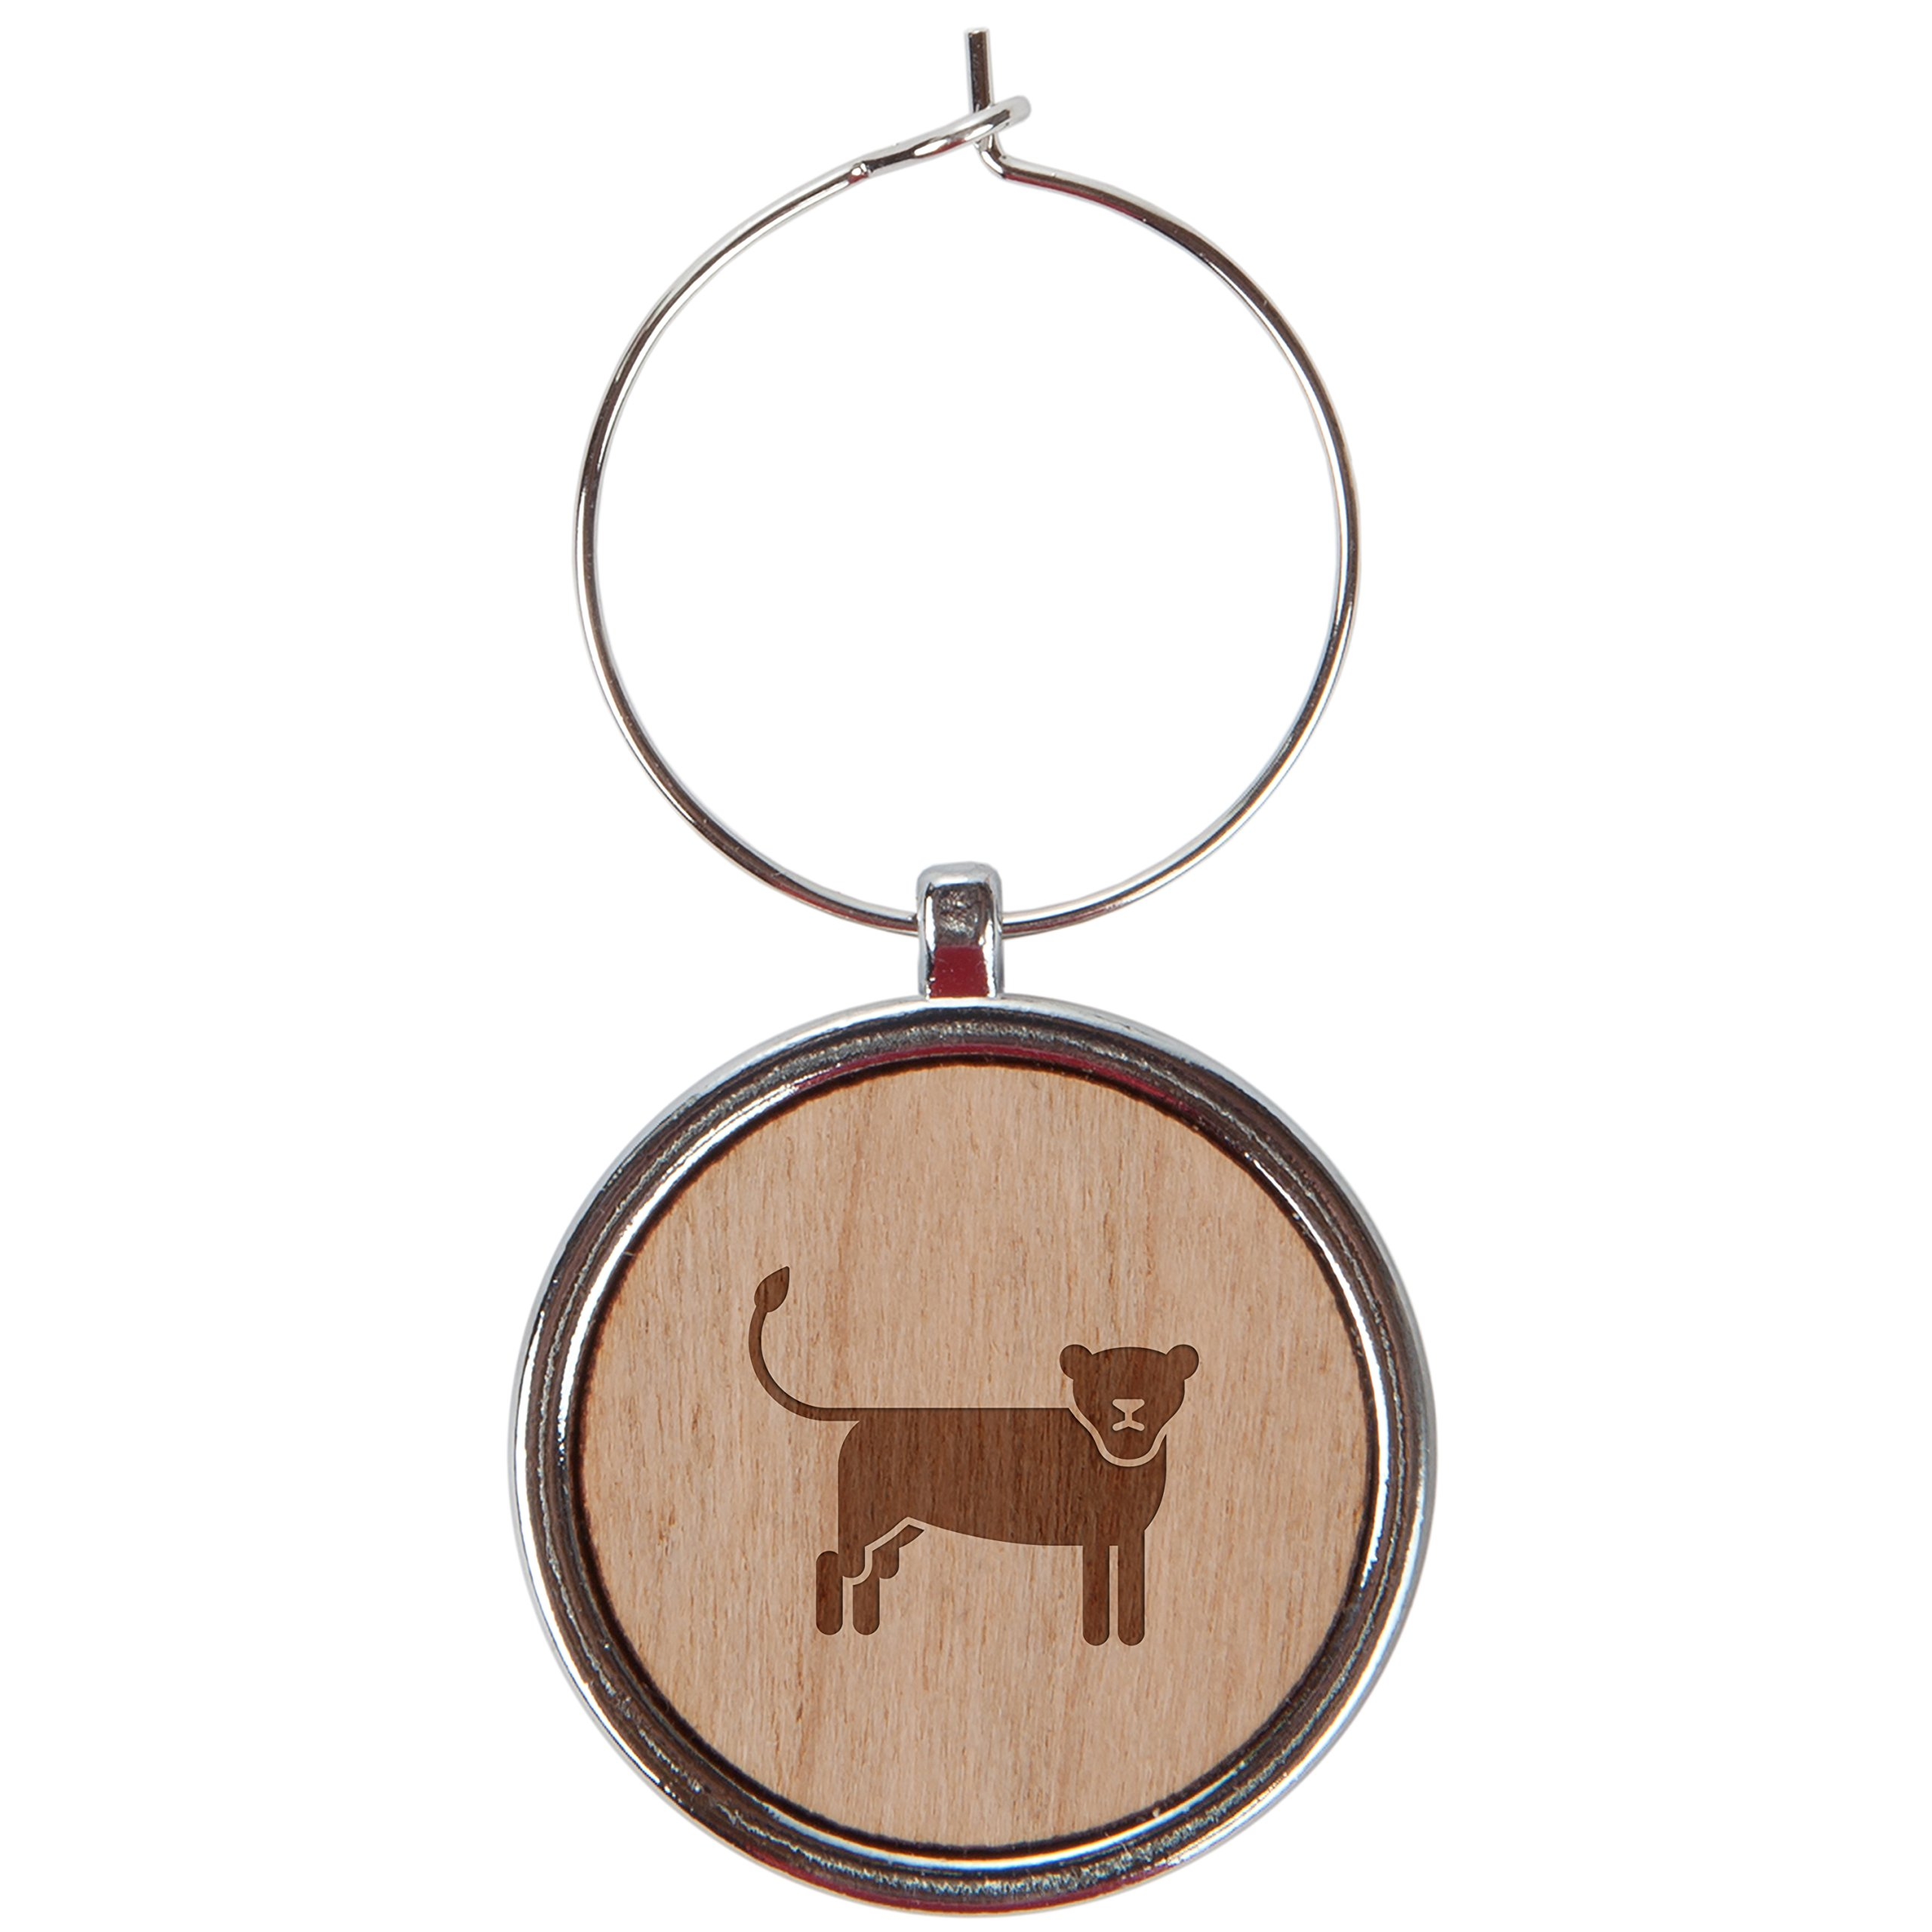 Lioness Wood Wine Glass Charms Set Of 6-1 Inch Laser Engraved Wine Glass Charms For Stemmed Wine Glasses - Wine Glass Charm Gift